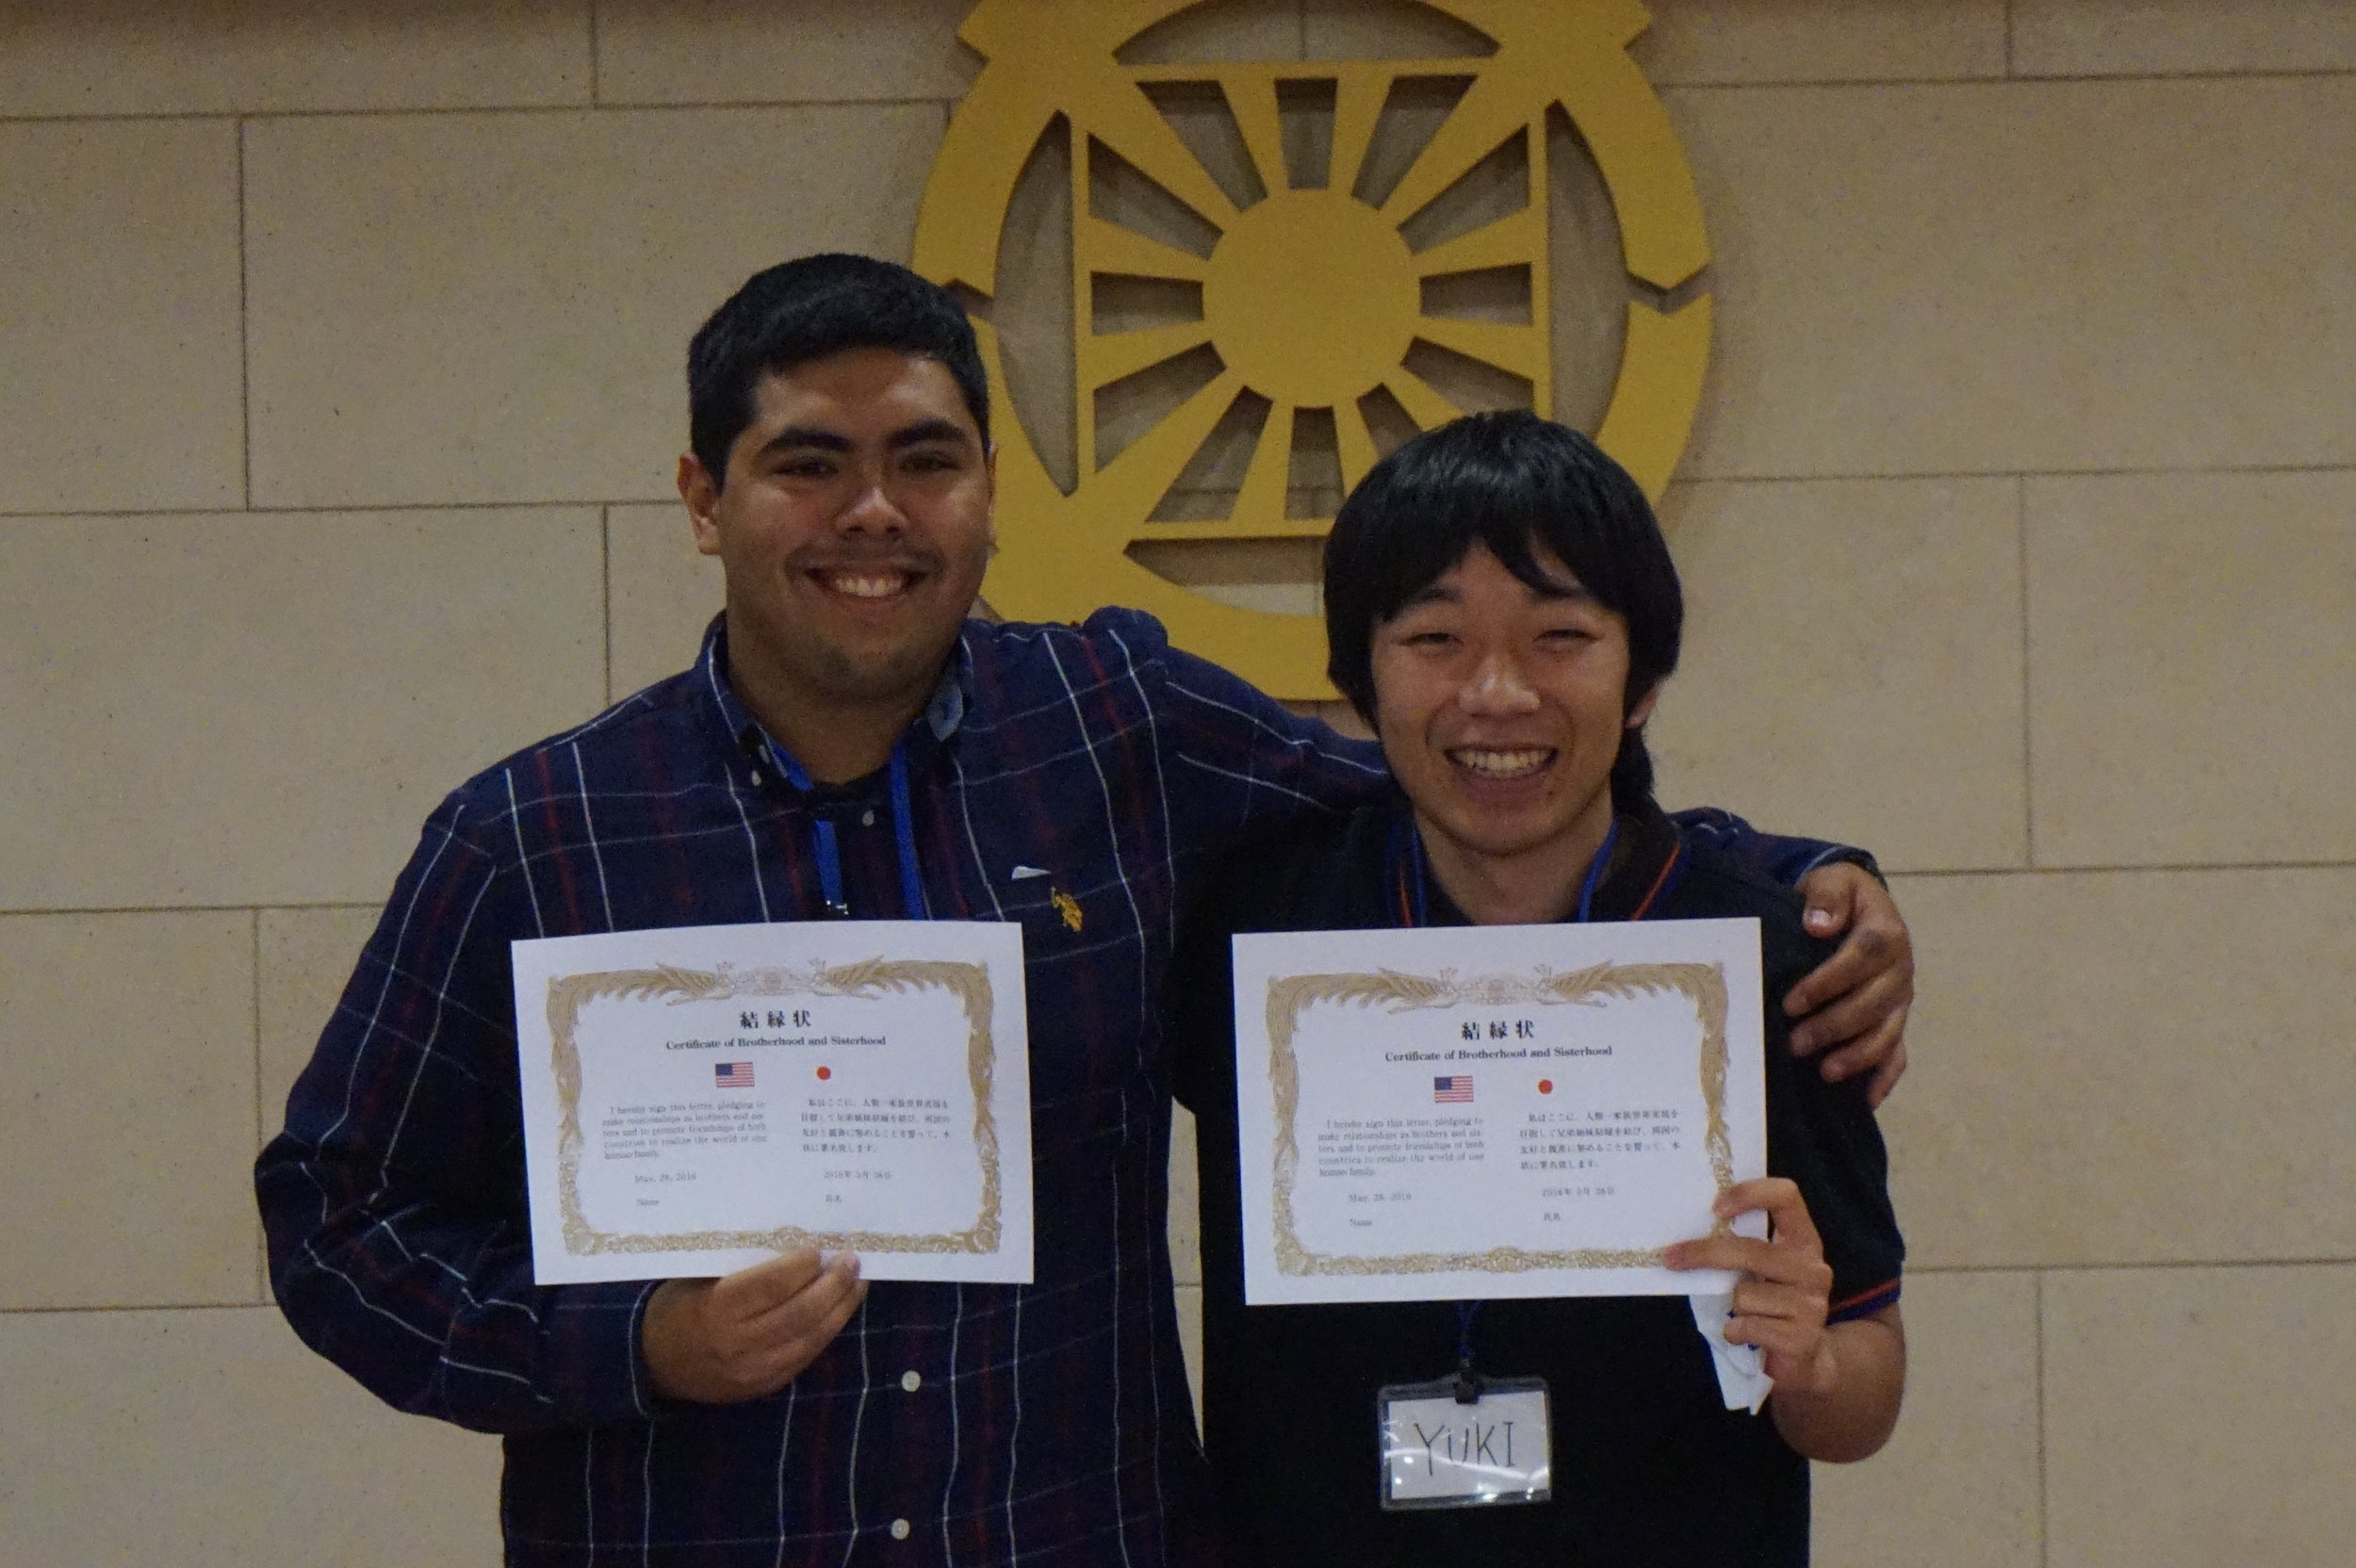 In the Brotherhood Ceremony, a Japanese and an American CARP member are united.